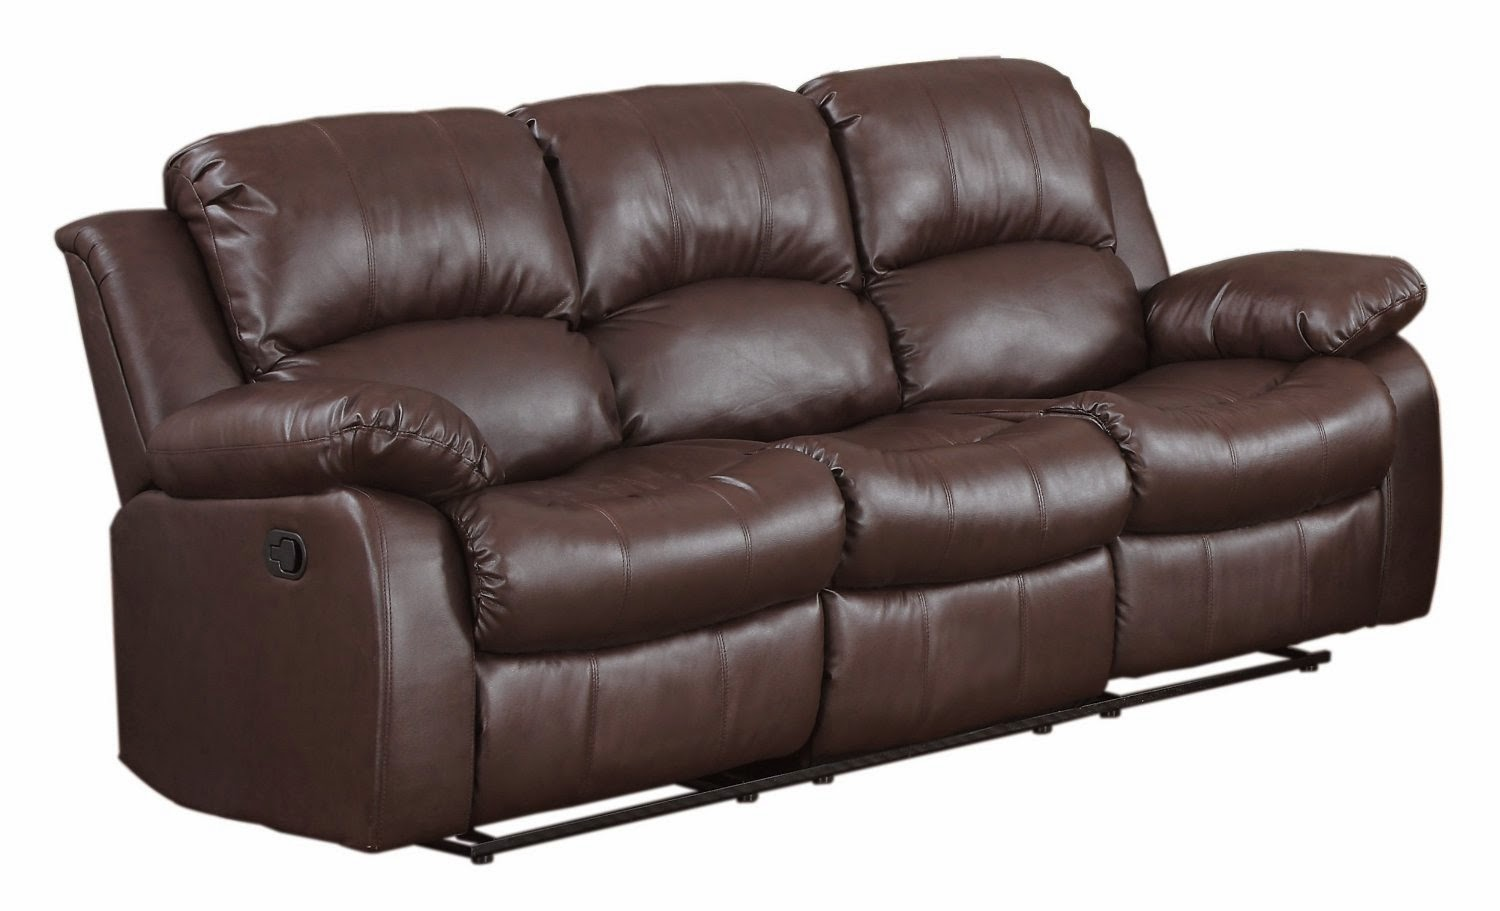 The best reclining leather sofa reviews leather recliner sofa sale uk Reclining loveseat sale